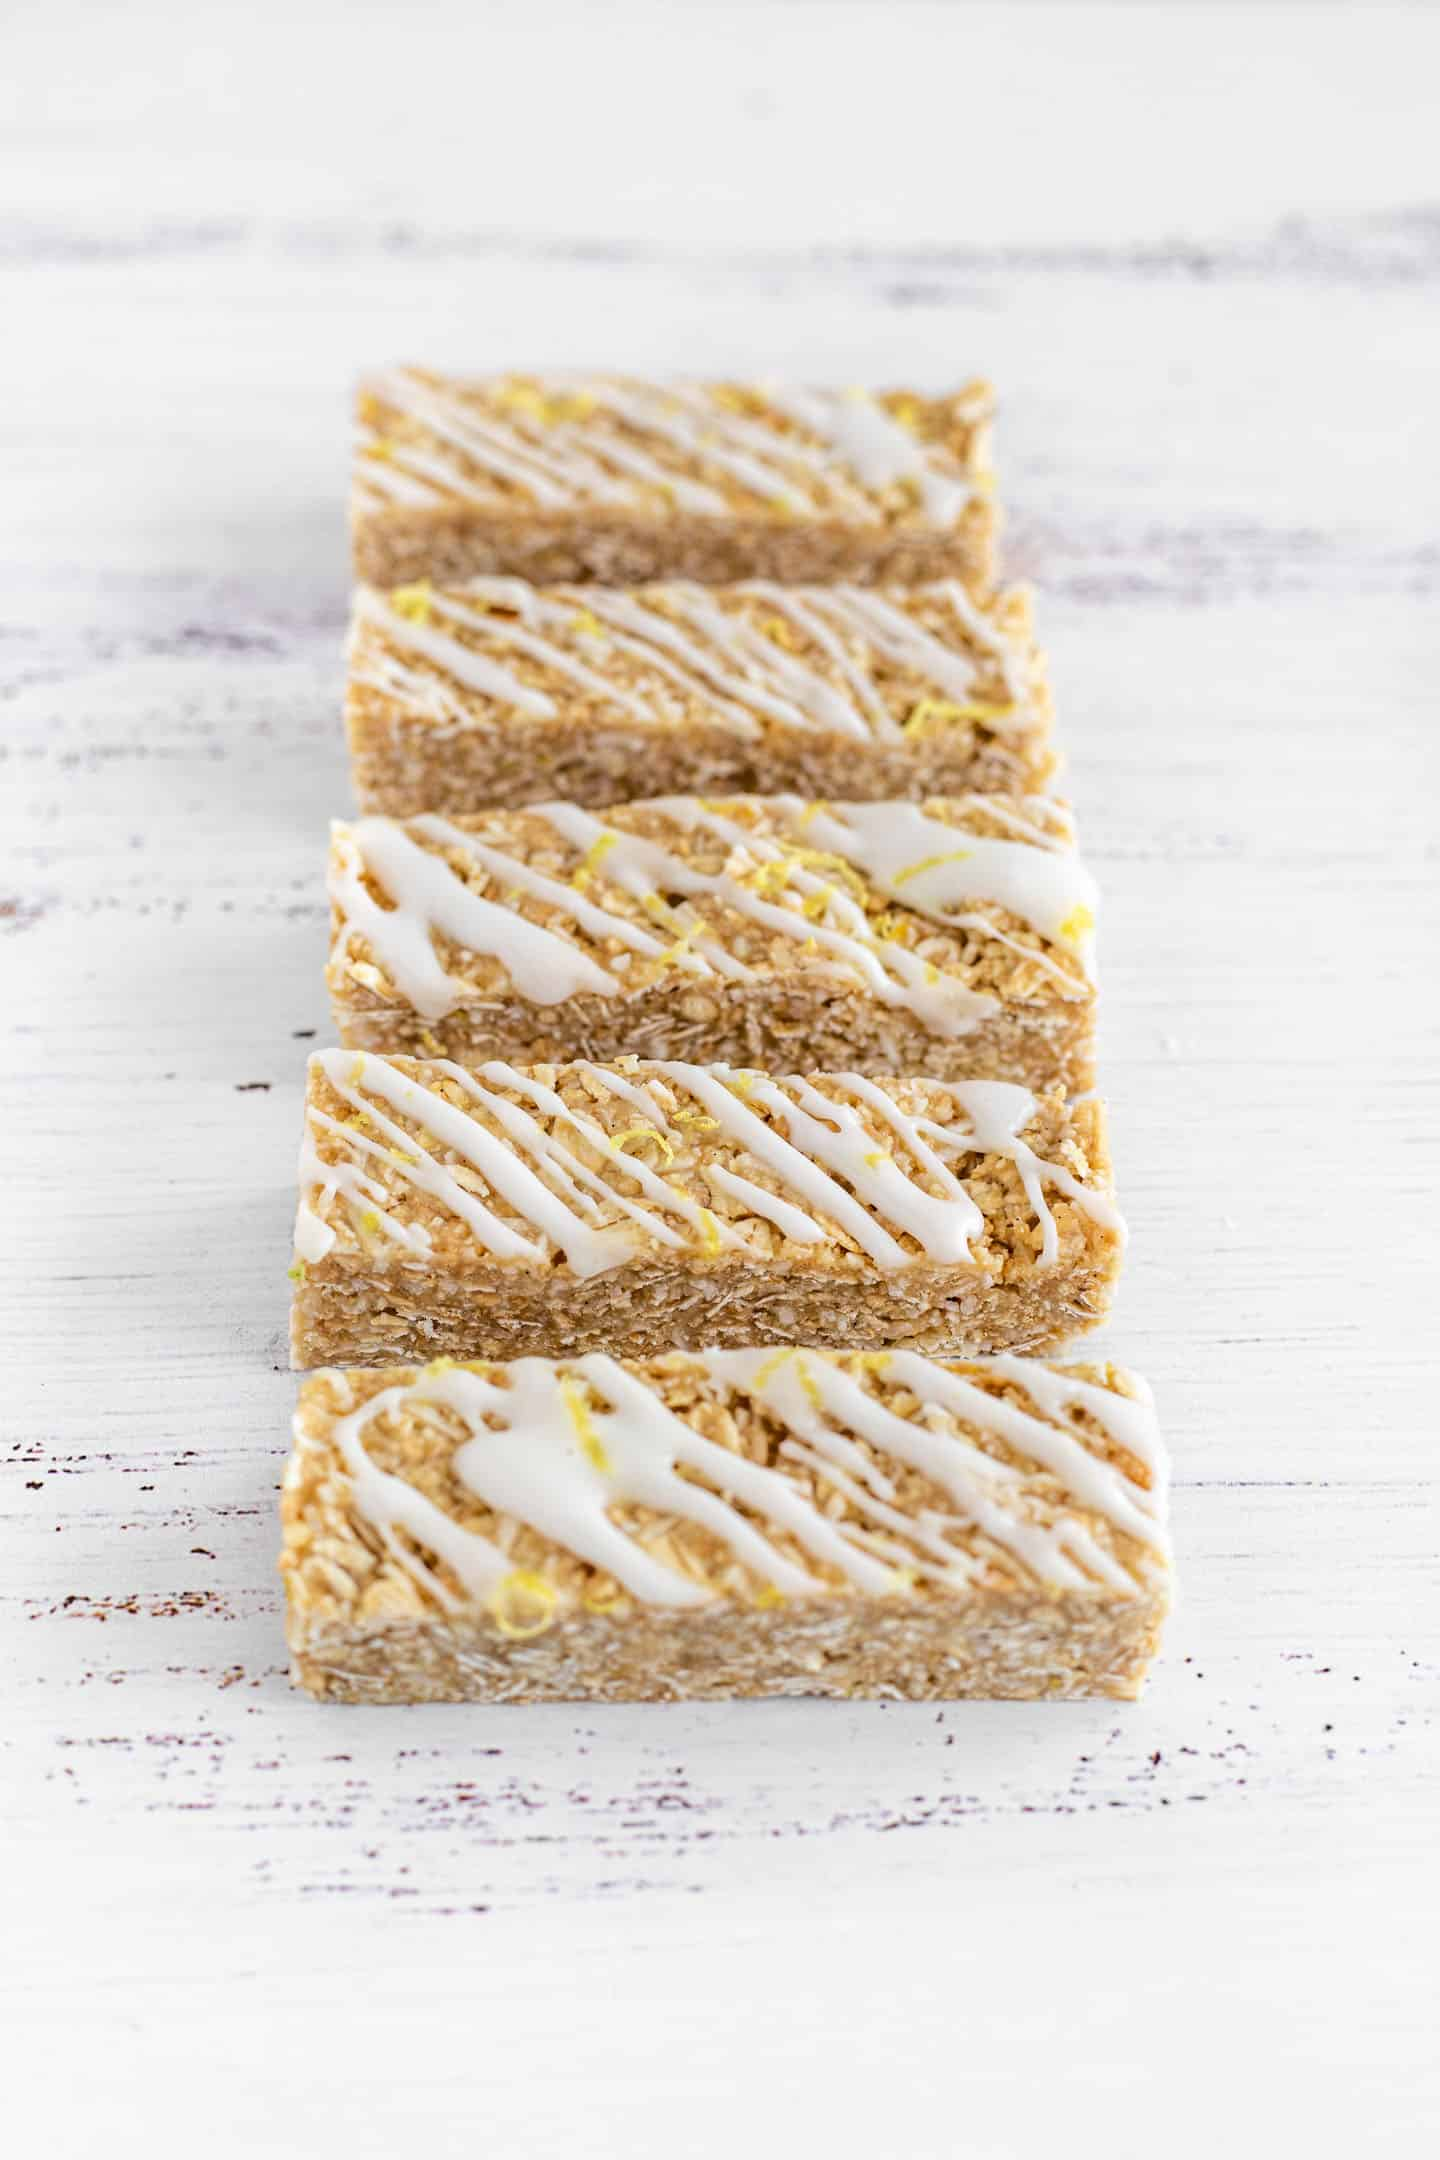 Lemon, coconut and oats bars on a white surface